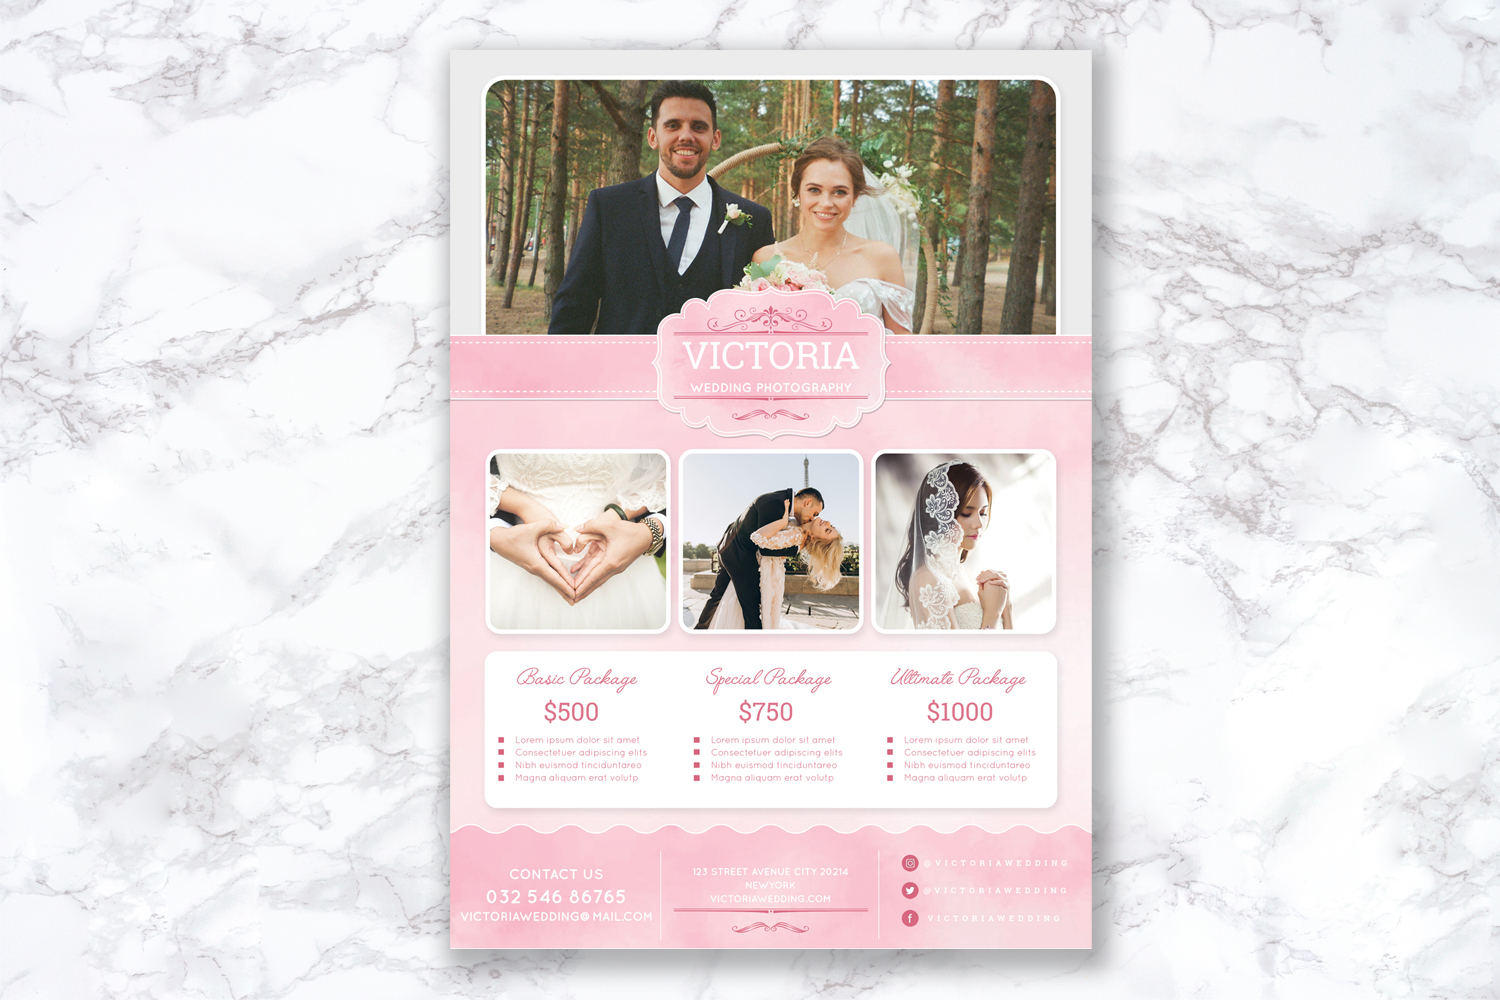 Soft Watercolor Wedding Photography Flyer example image 3